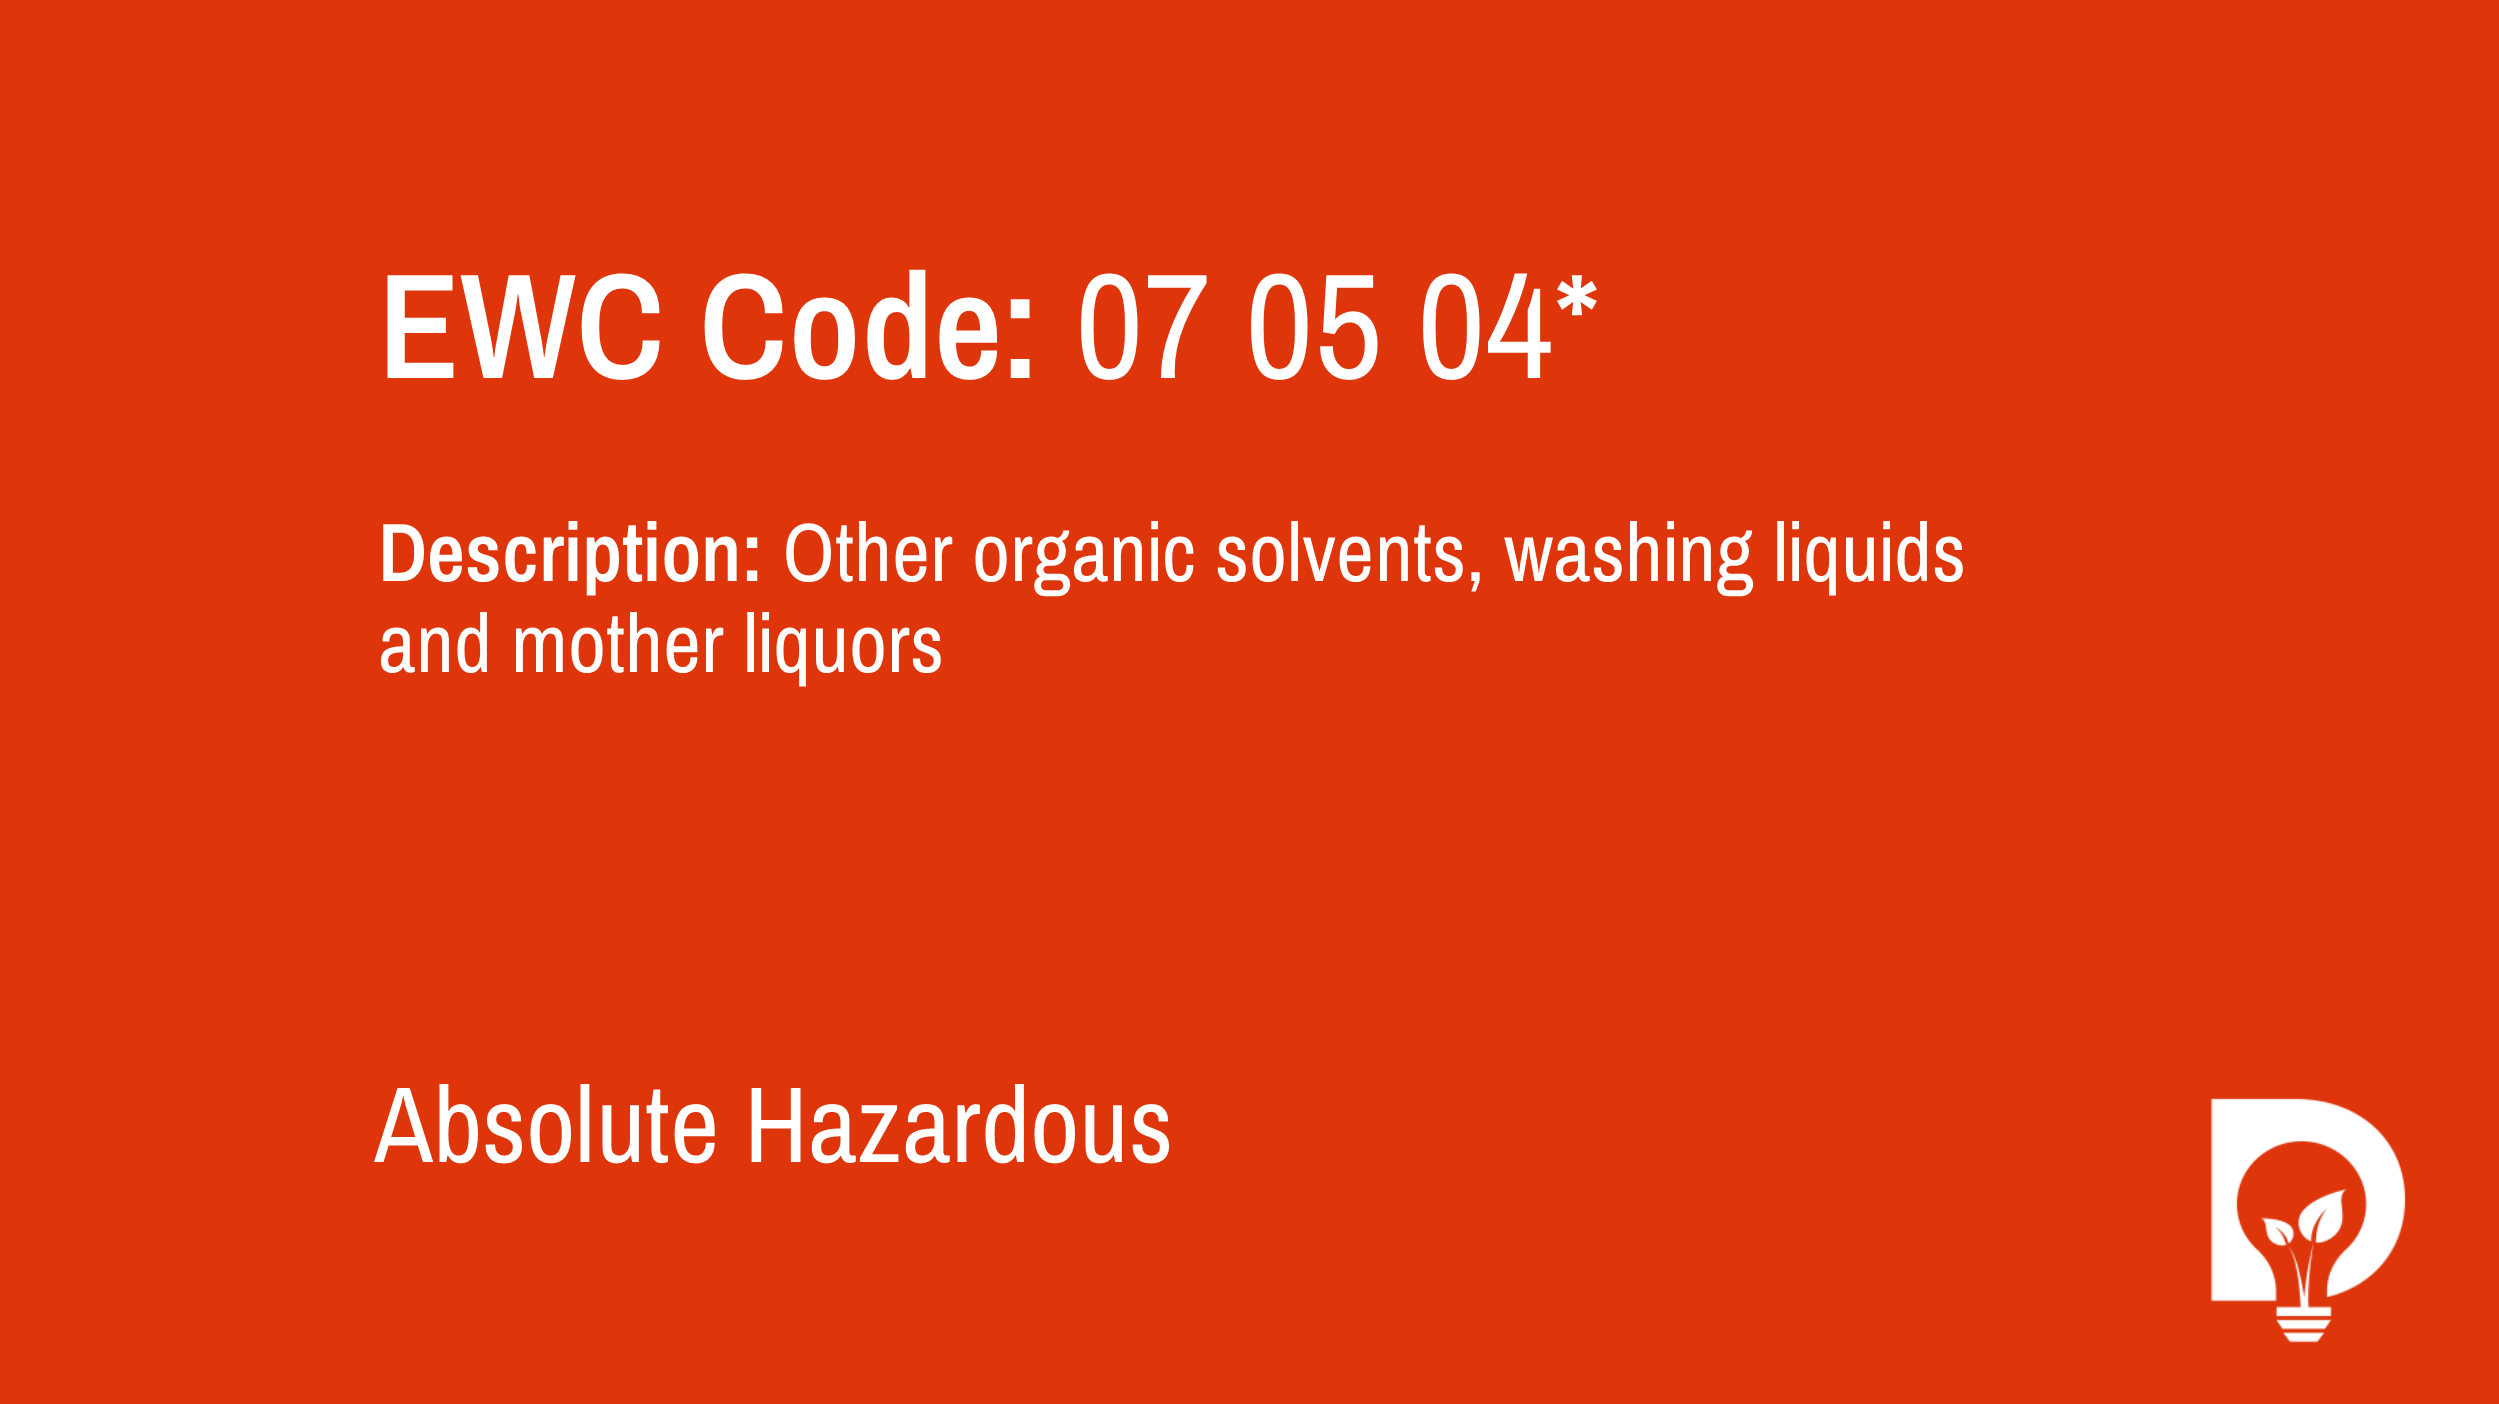 EWC Code: 07 05 04* - other organic solvents, washing liquids and mother liquors. Type: Absolute Hazardous. Image by Dsposal